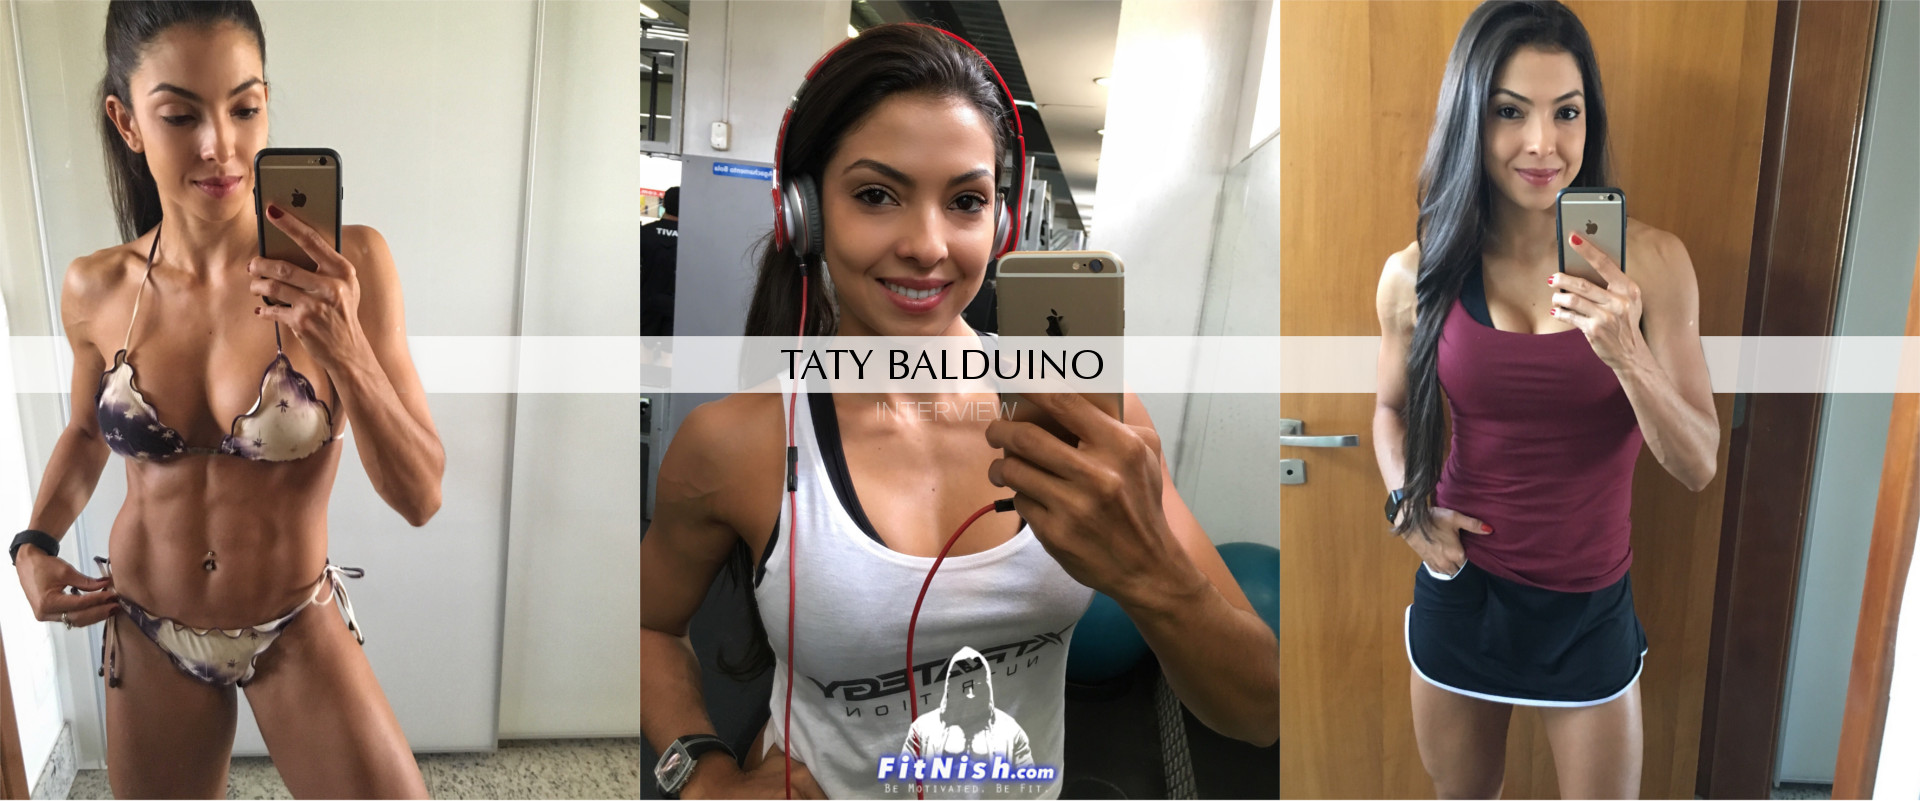 FitNish.com Interview With Brazilian Fitness Enthusiast, Taty Balduino